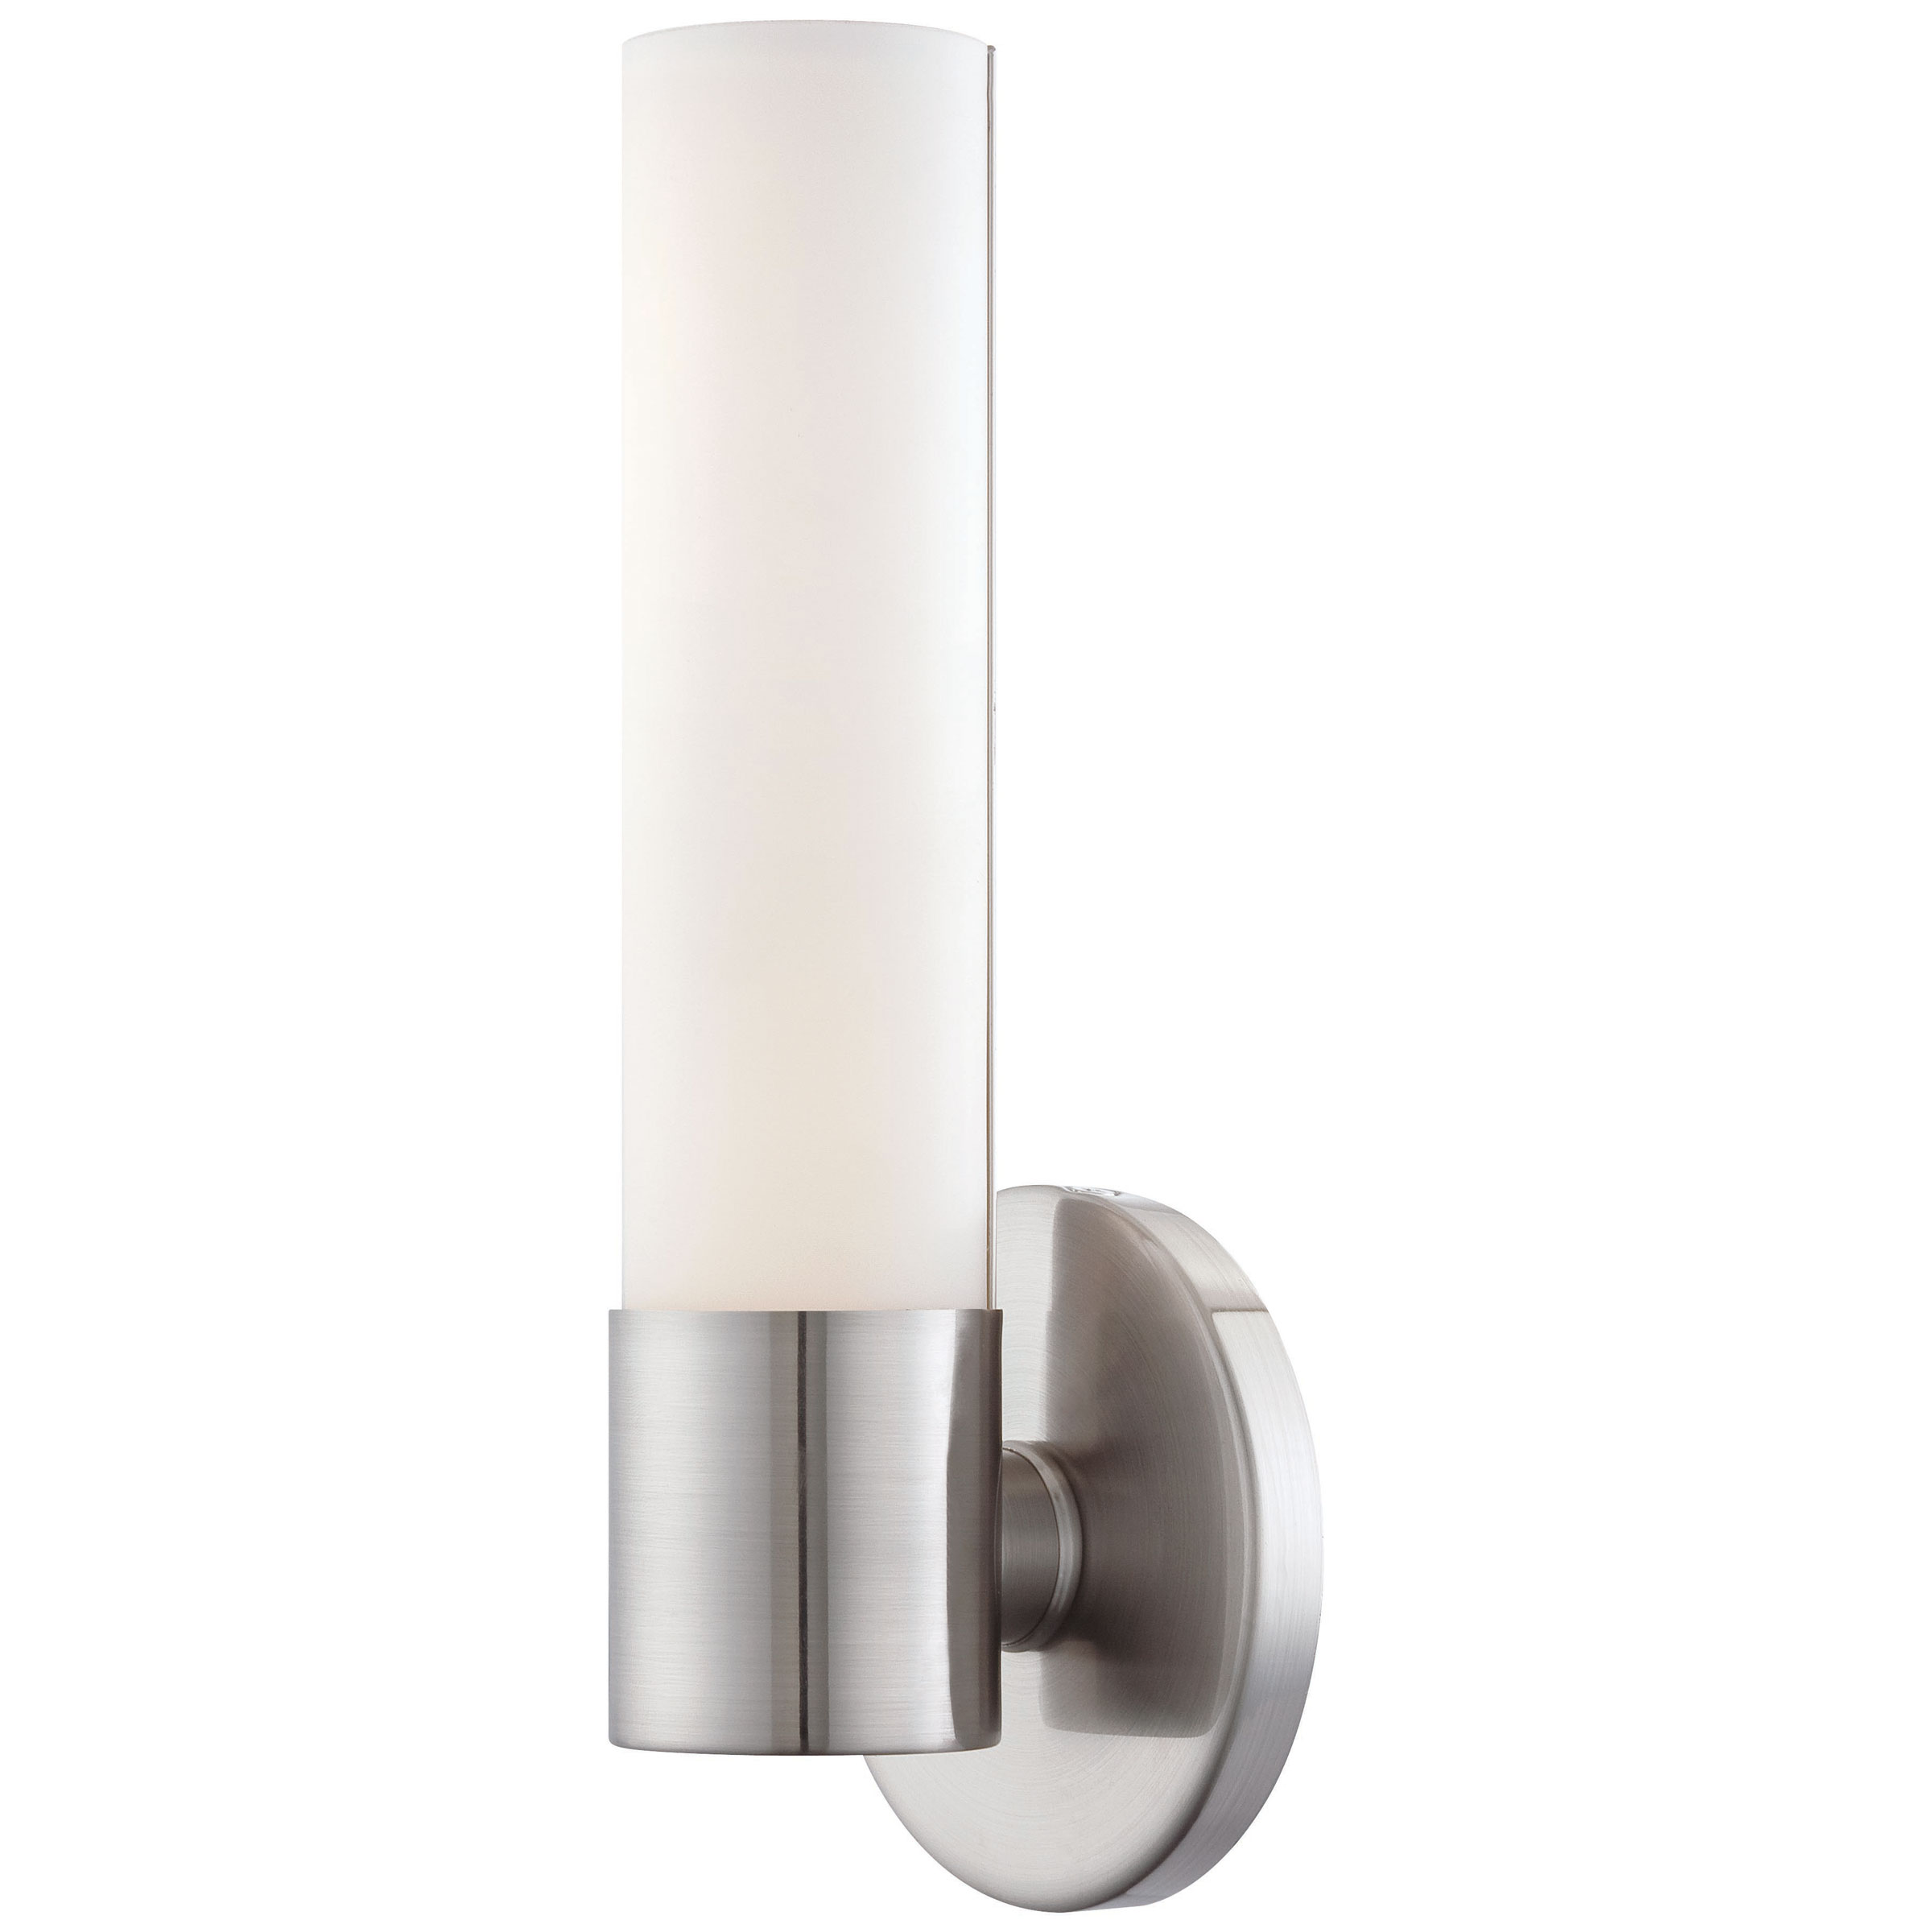 Saber Led Ada Wall Light By George Kovacs P5041 084 L